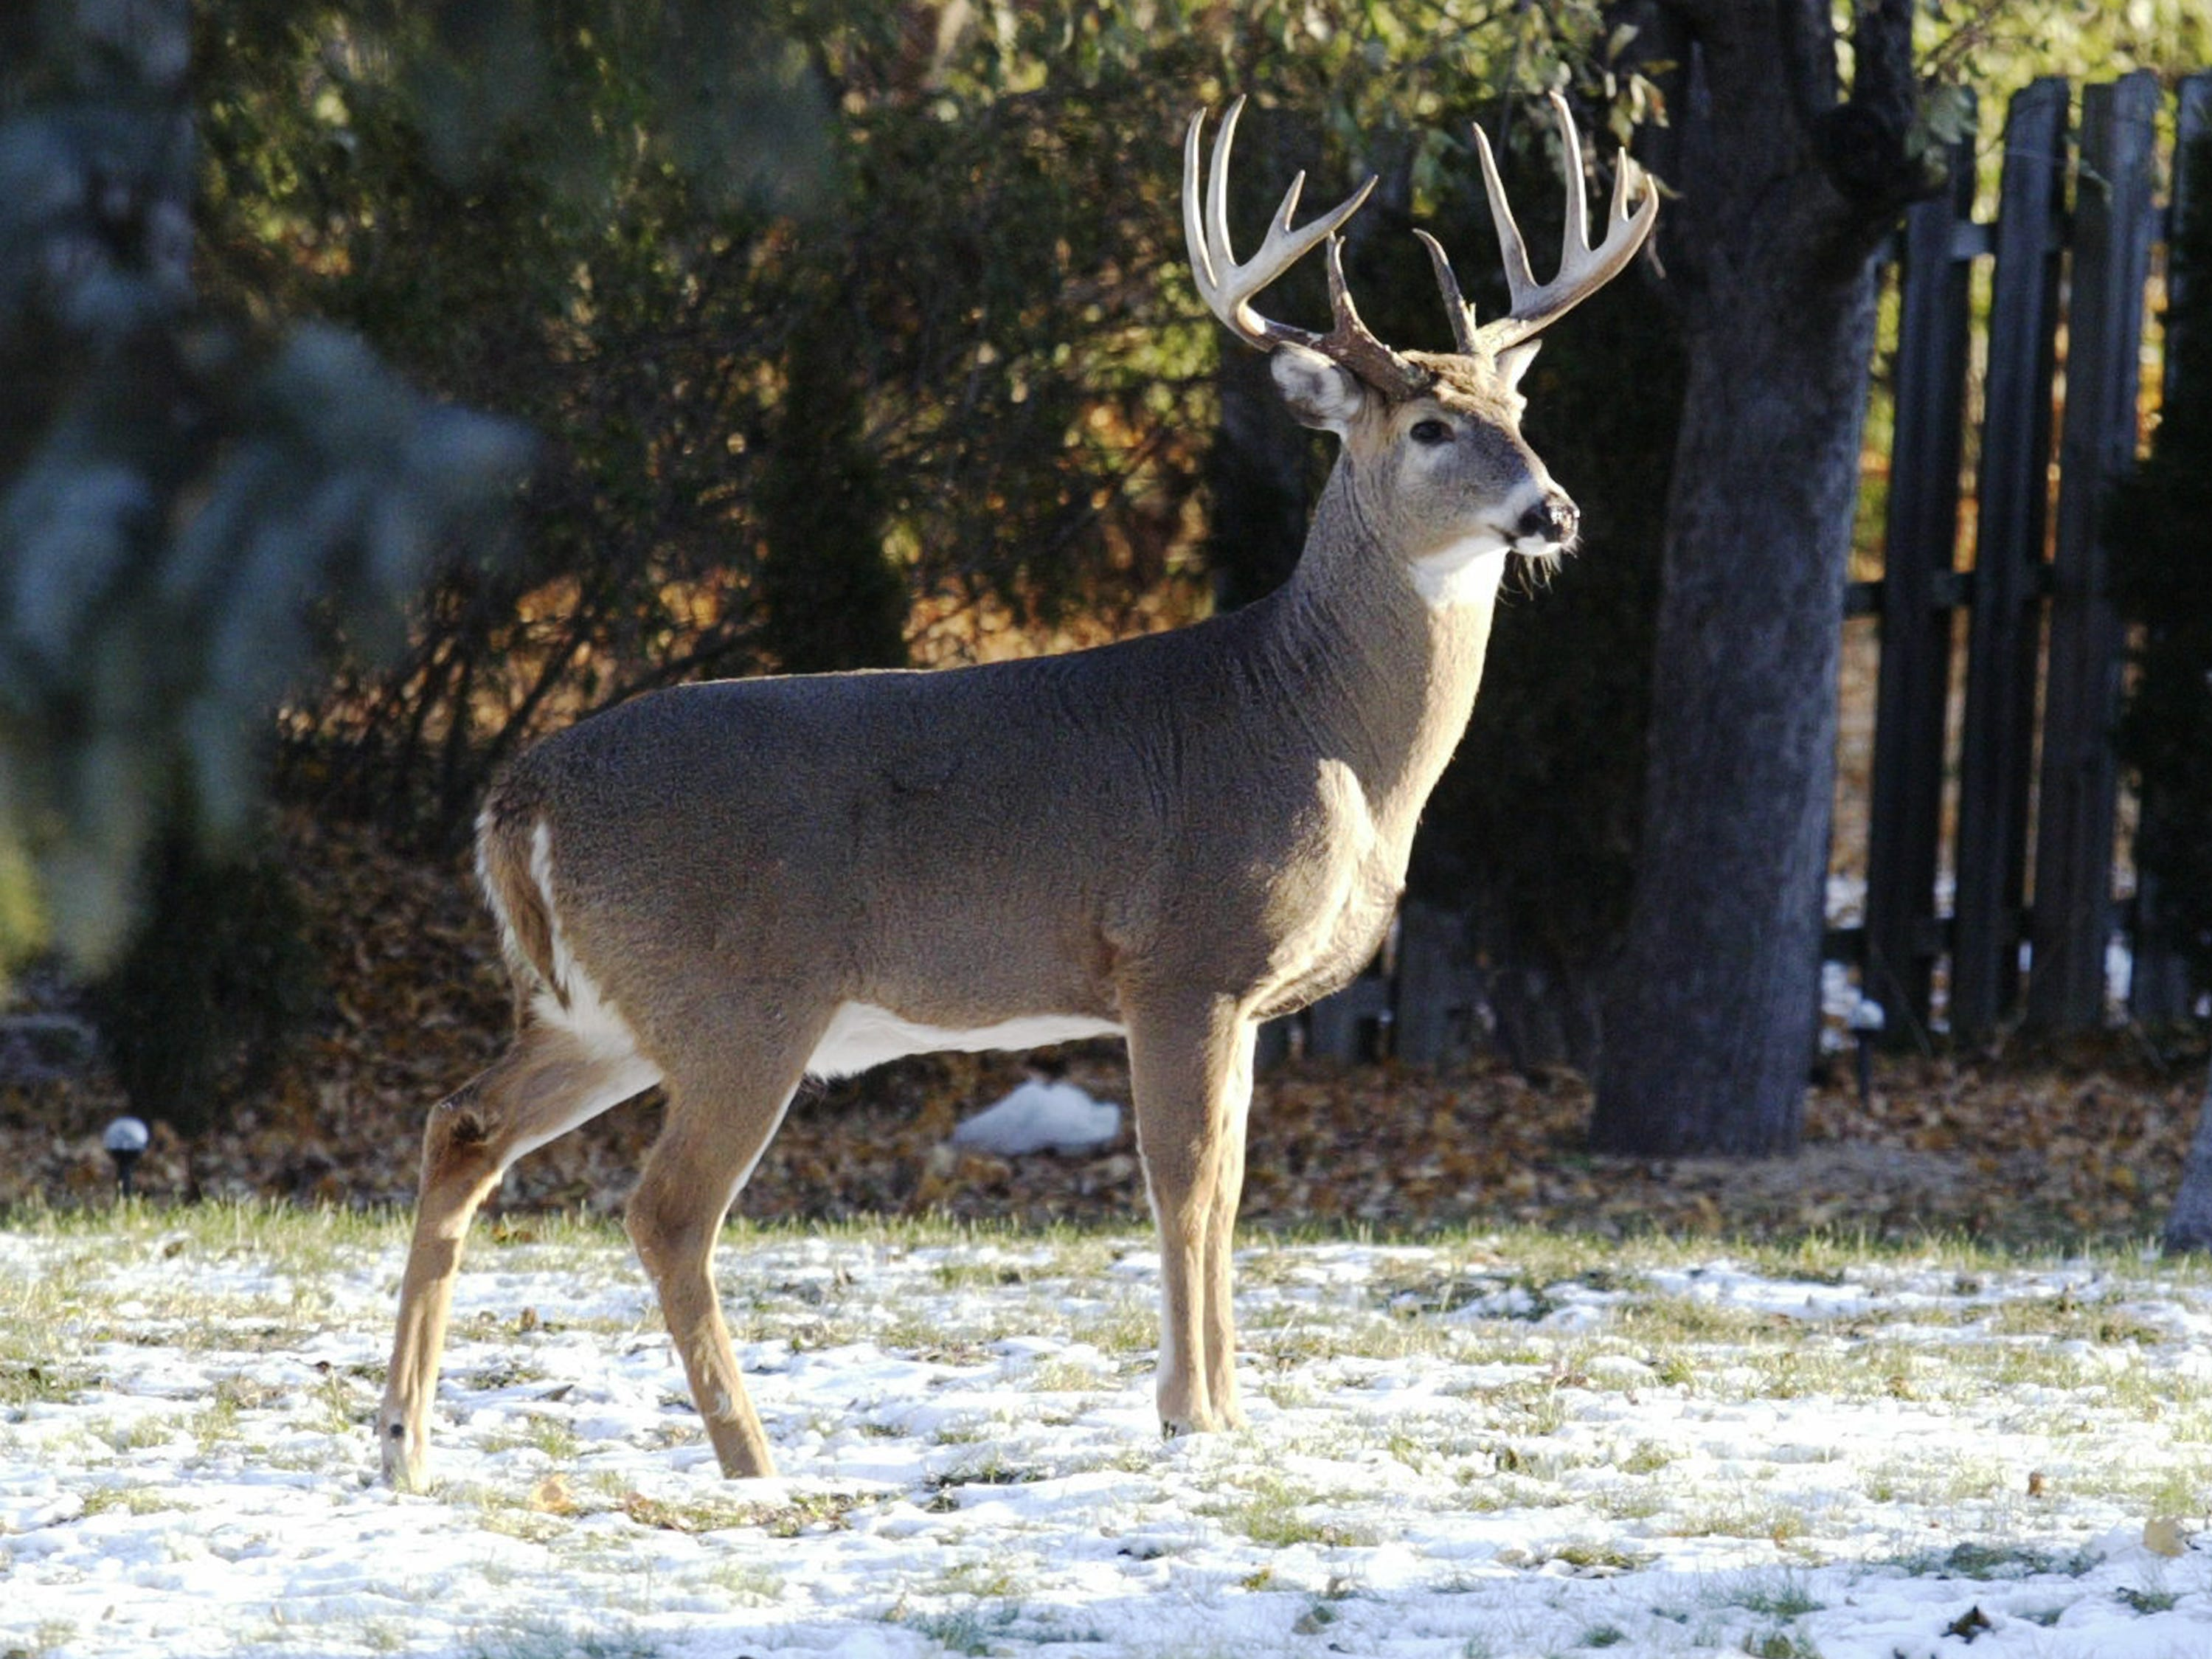 A buck stands in the backyard of a Sheboygan home in the 1000 block of N. 23rd Street, Wednesday November 14, 2018, in Sheboygan, Wis.